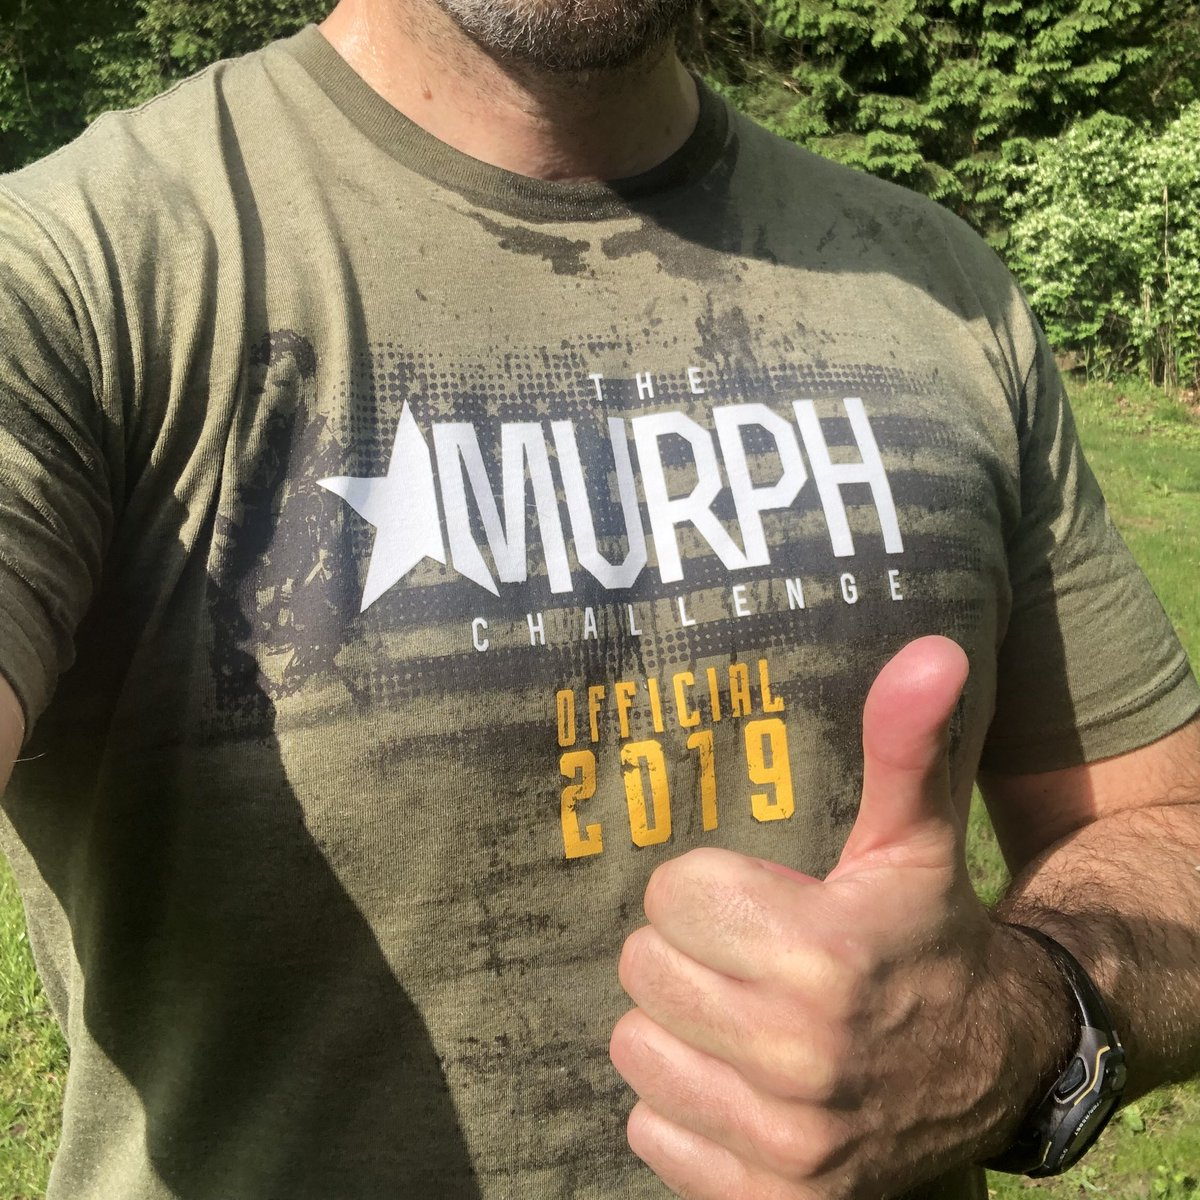 Made a small sacrifice to honor those that made the ultimate sacrifice. Working in the ER this weekend and did The Murph Challenge a couple days early. #takethechallenge @prattprattpratt @MurphChallenge